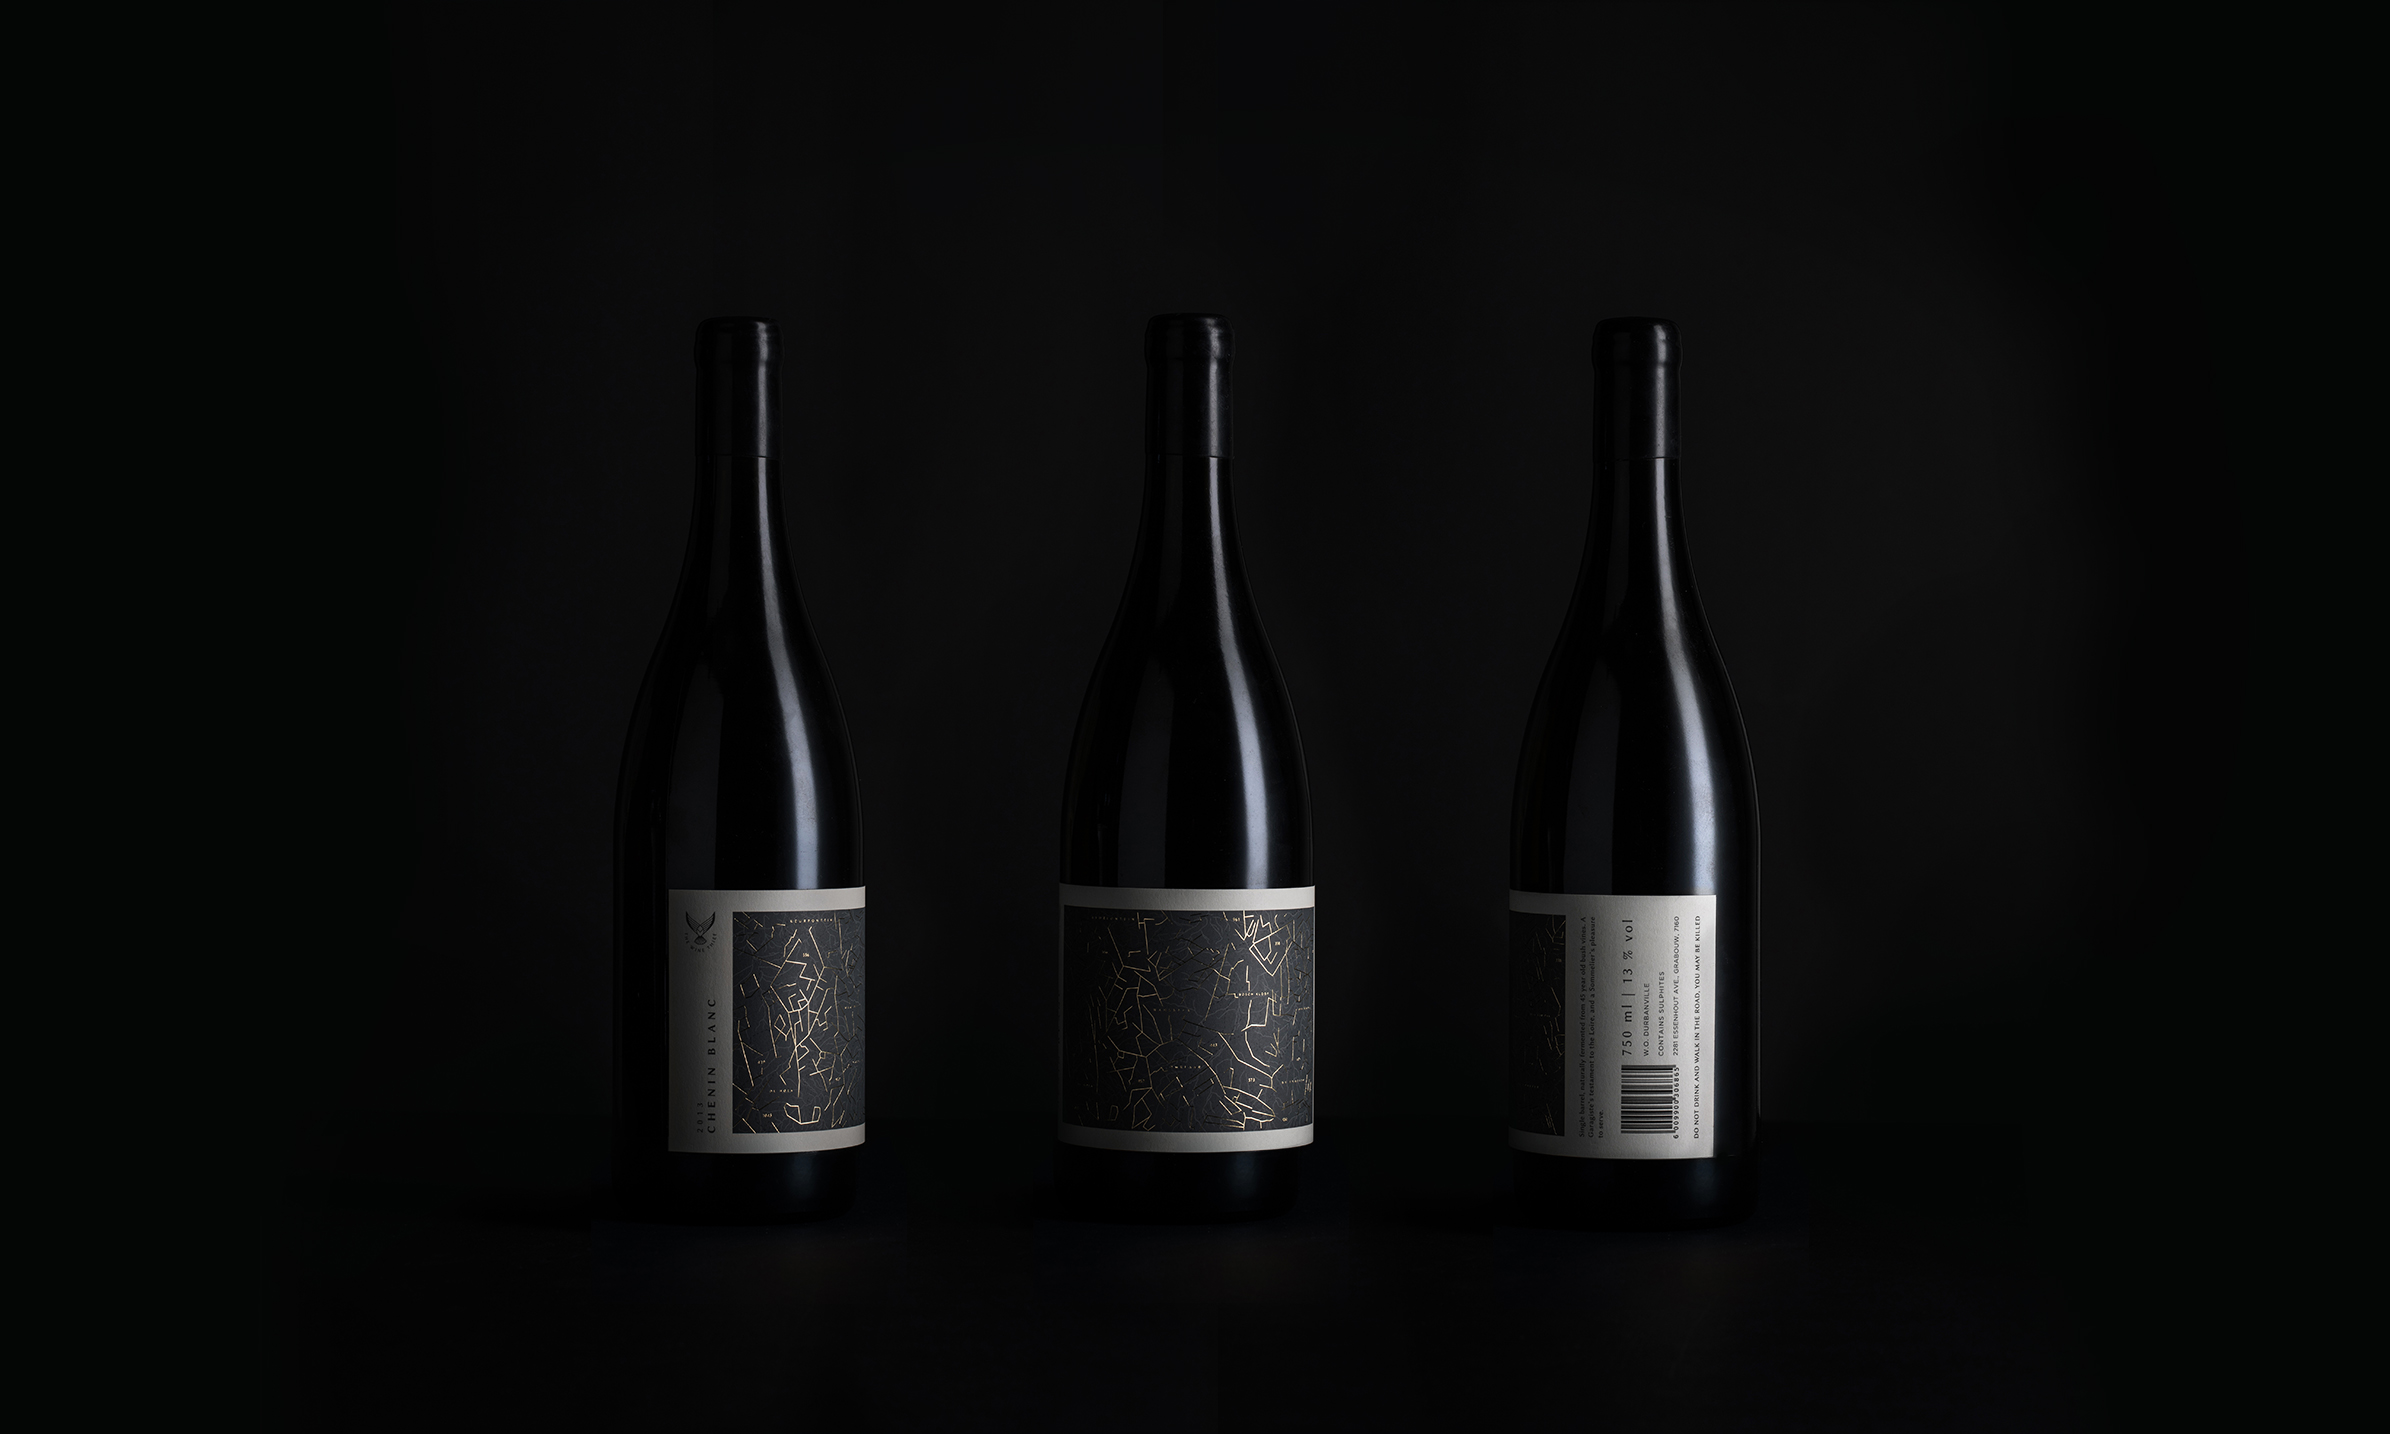 Grey labels on wine bottles from Studio Collective